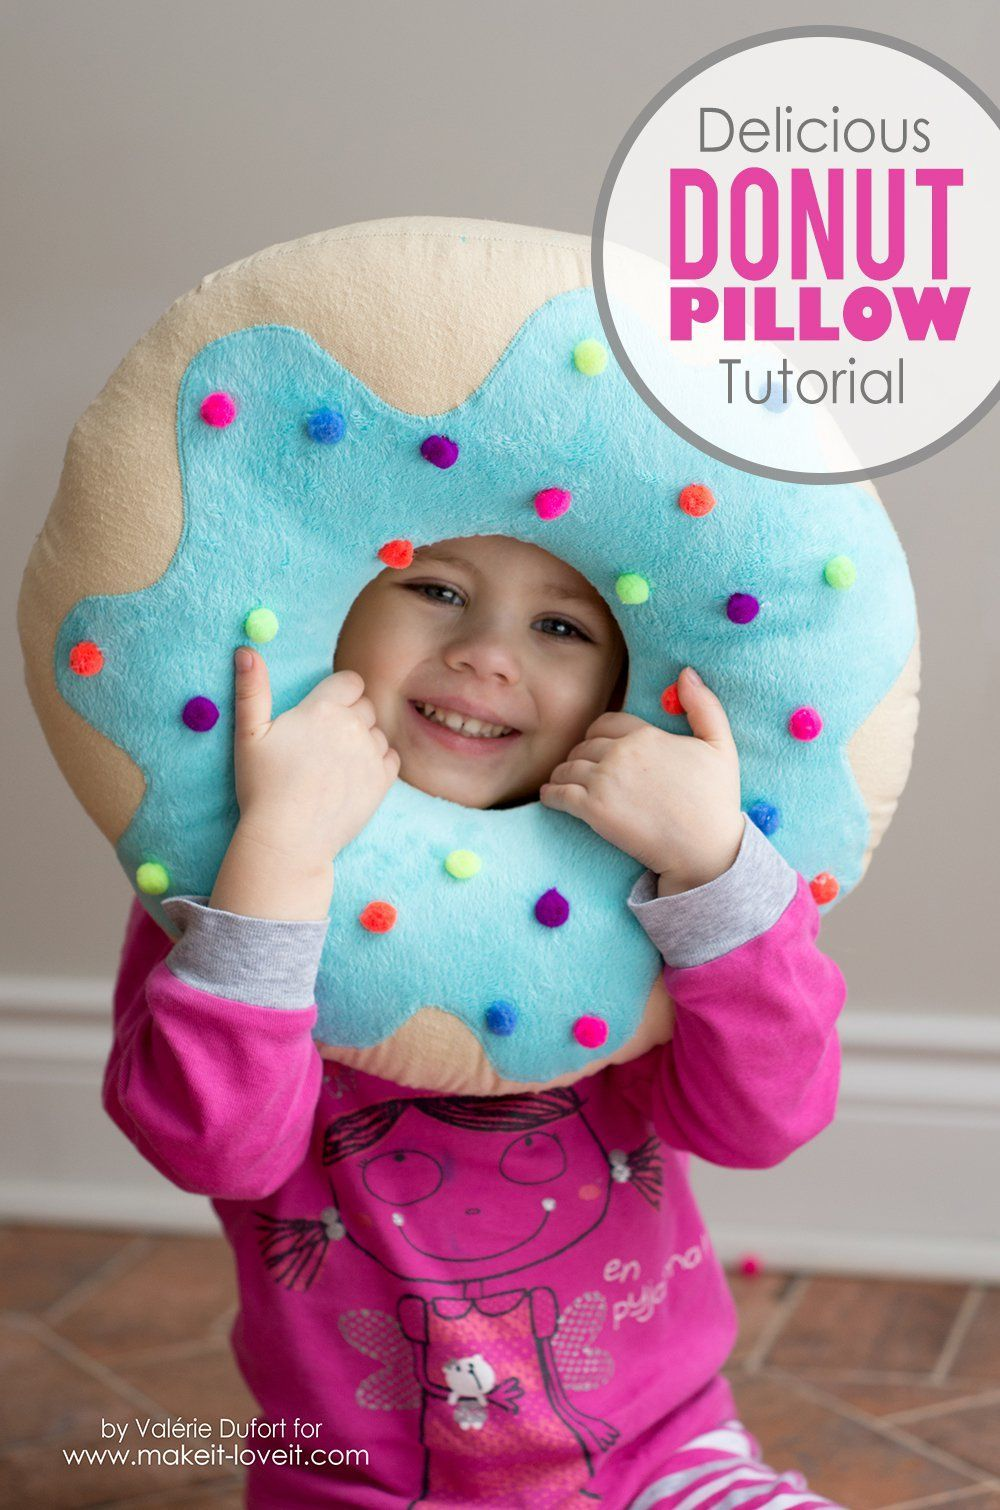 Delicious donut pillow tutorial sewing projects for kids